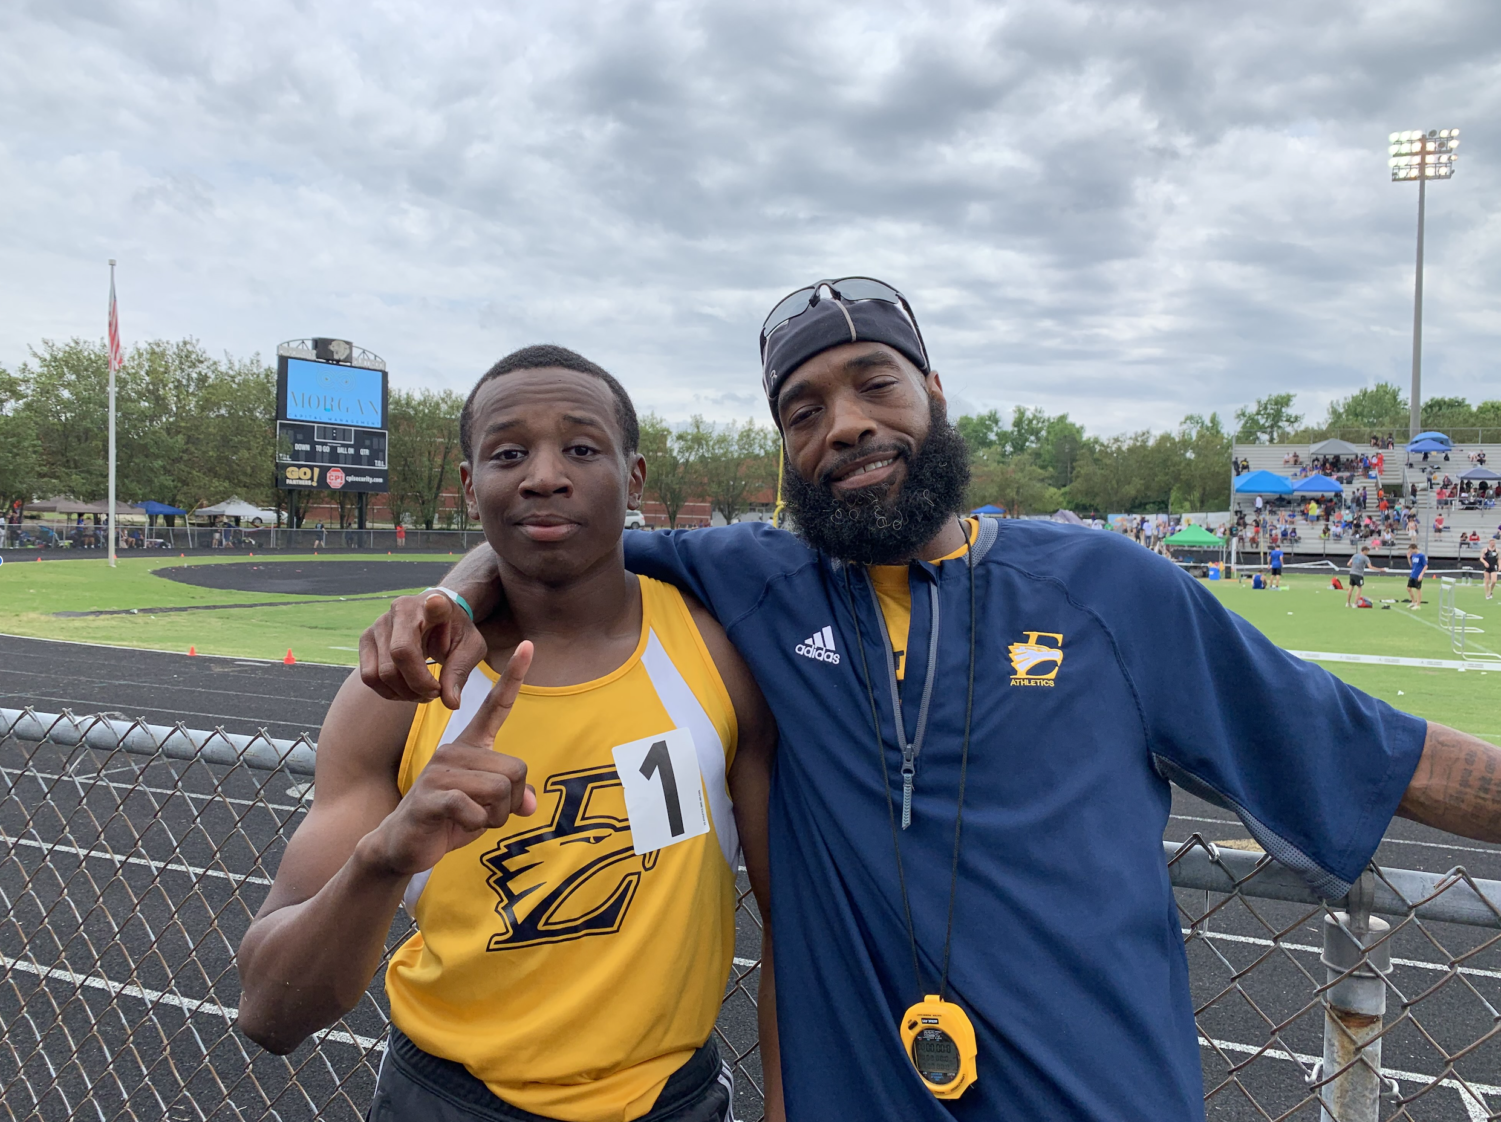 Senior athlete Kyle Goodman poses with Coach Hunter after 800M win.